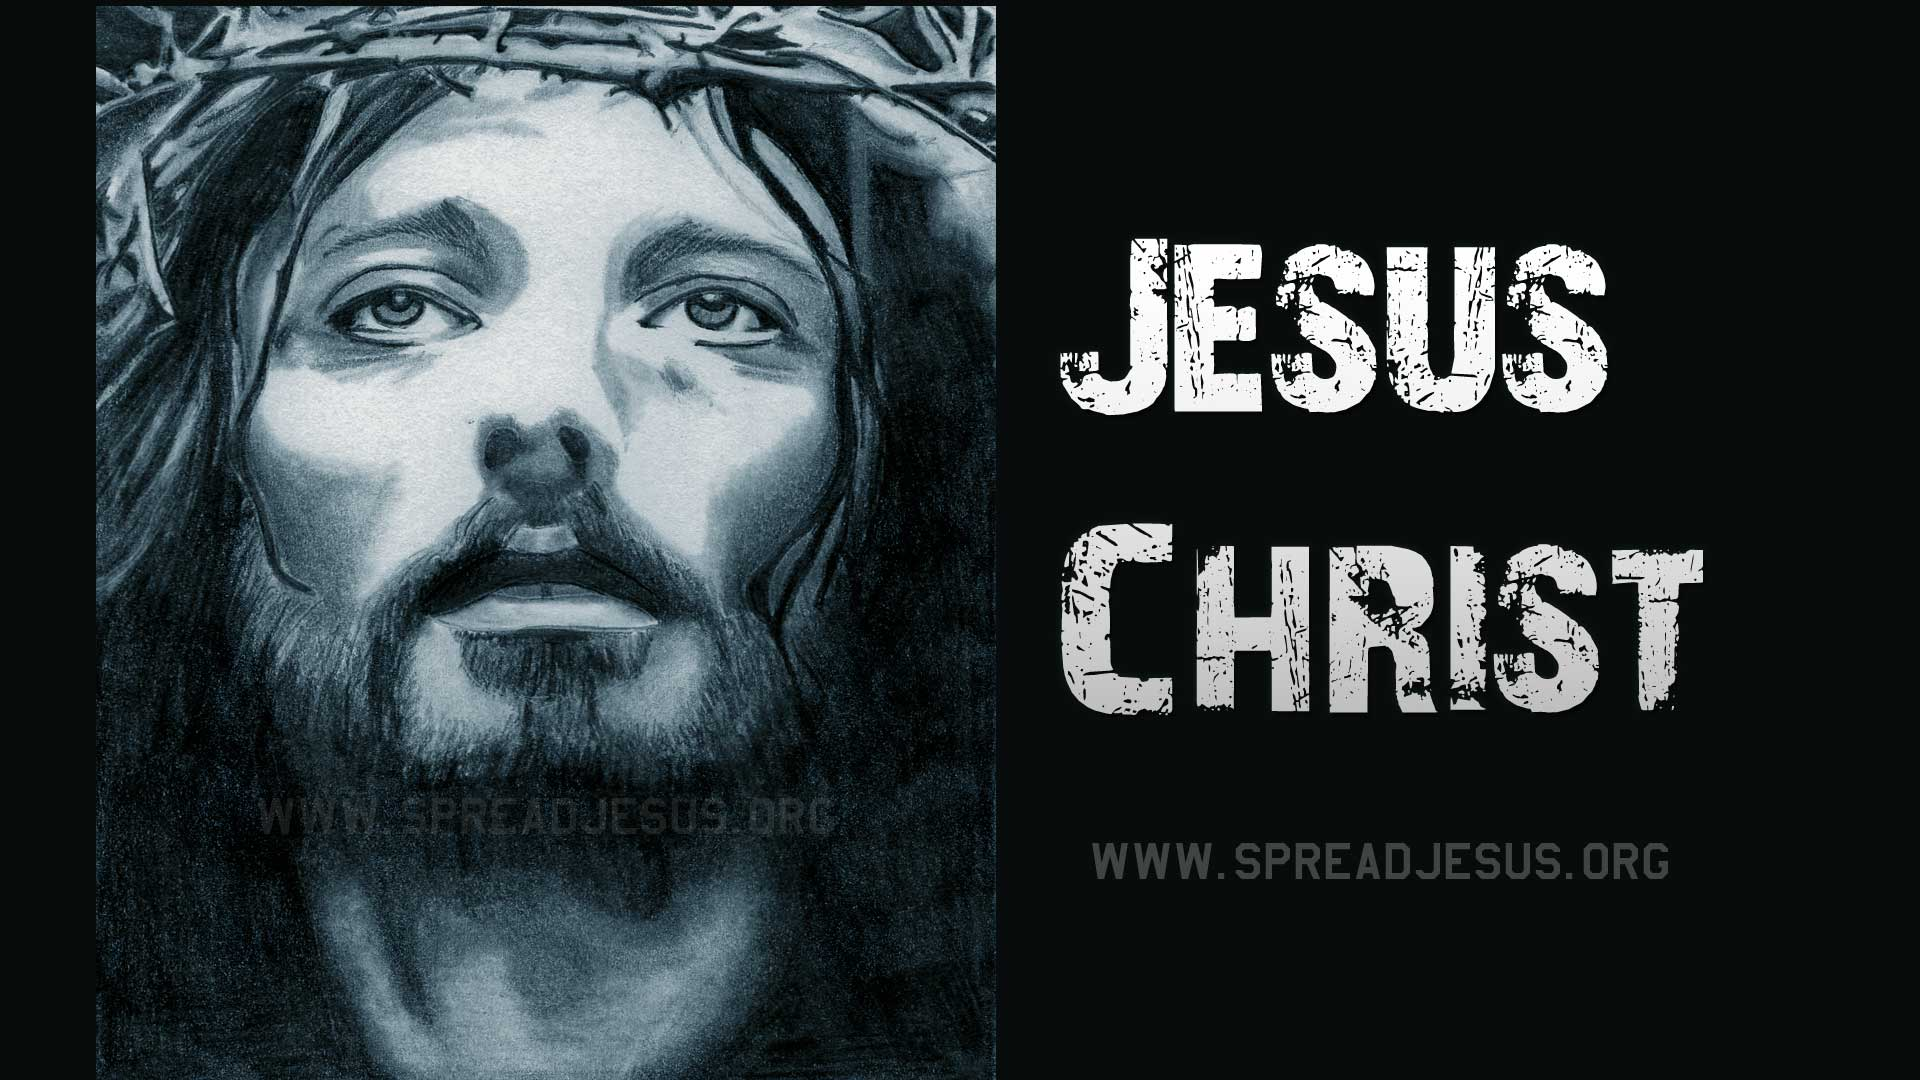 jesus christ wallpapers2:hd wallpapers pics